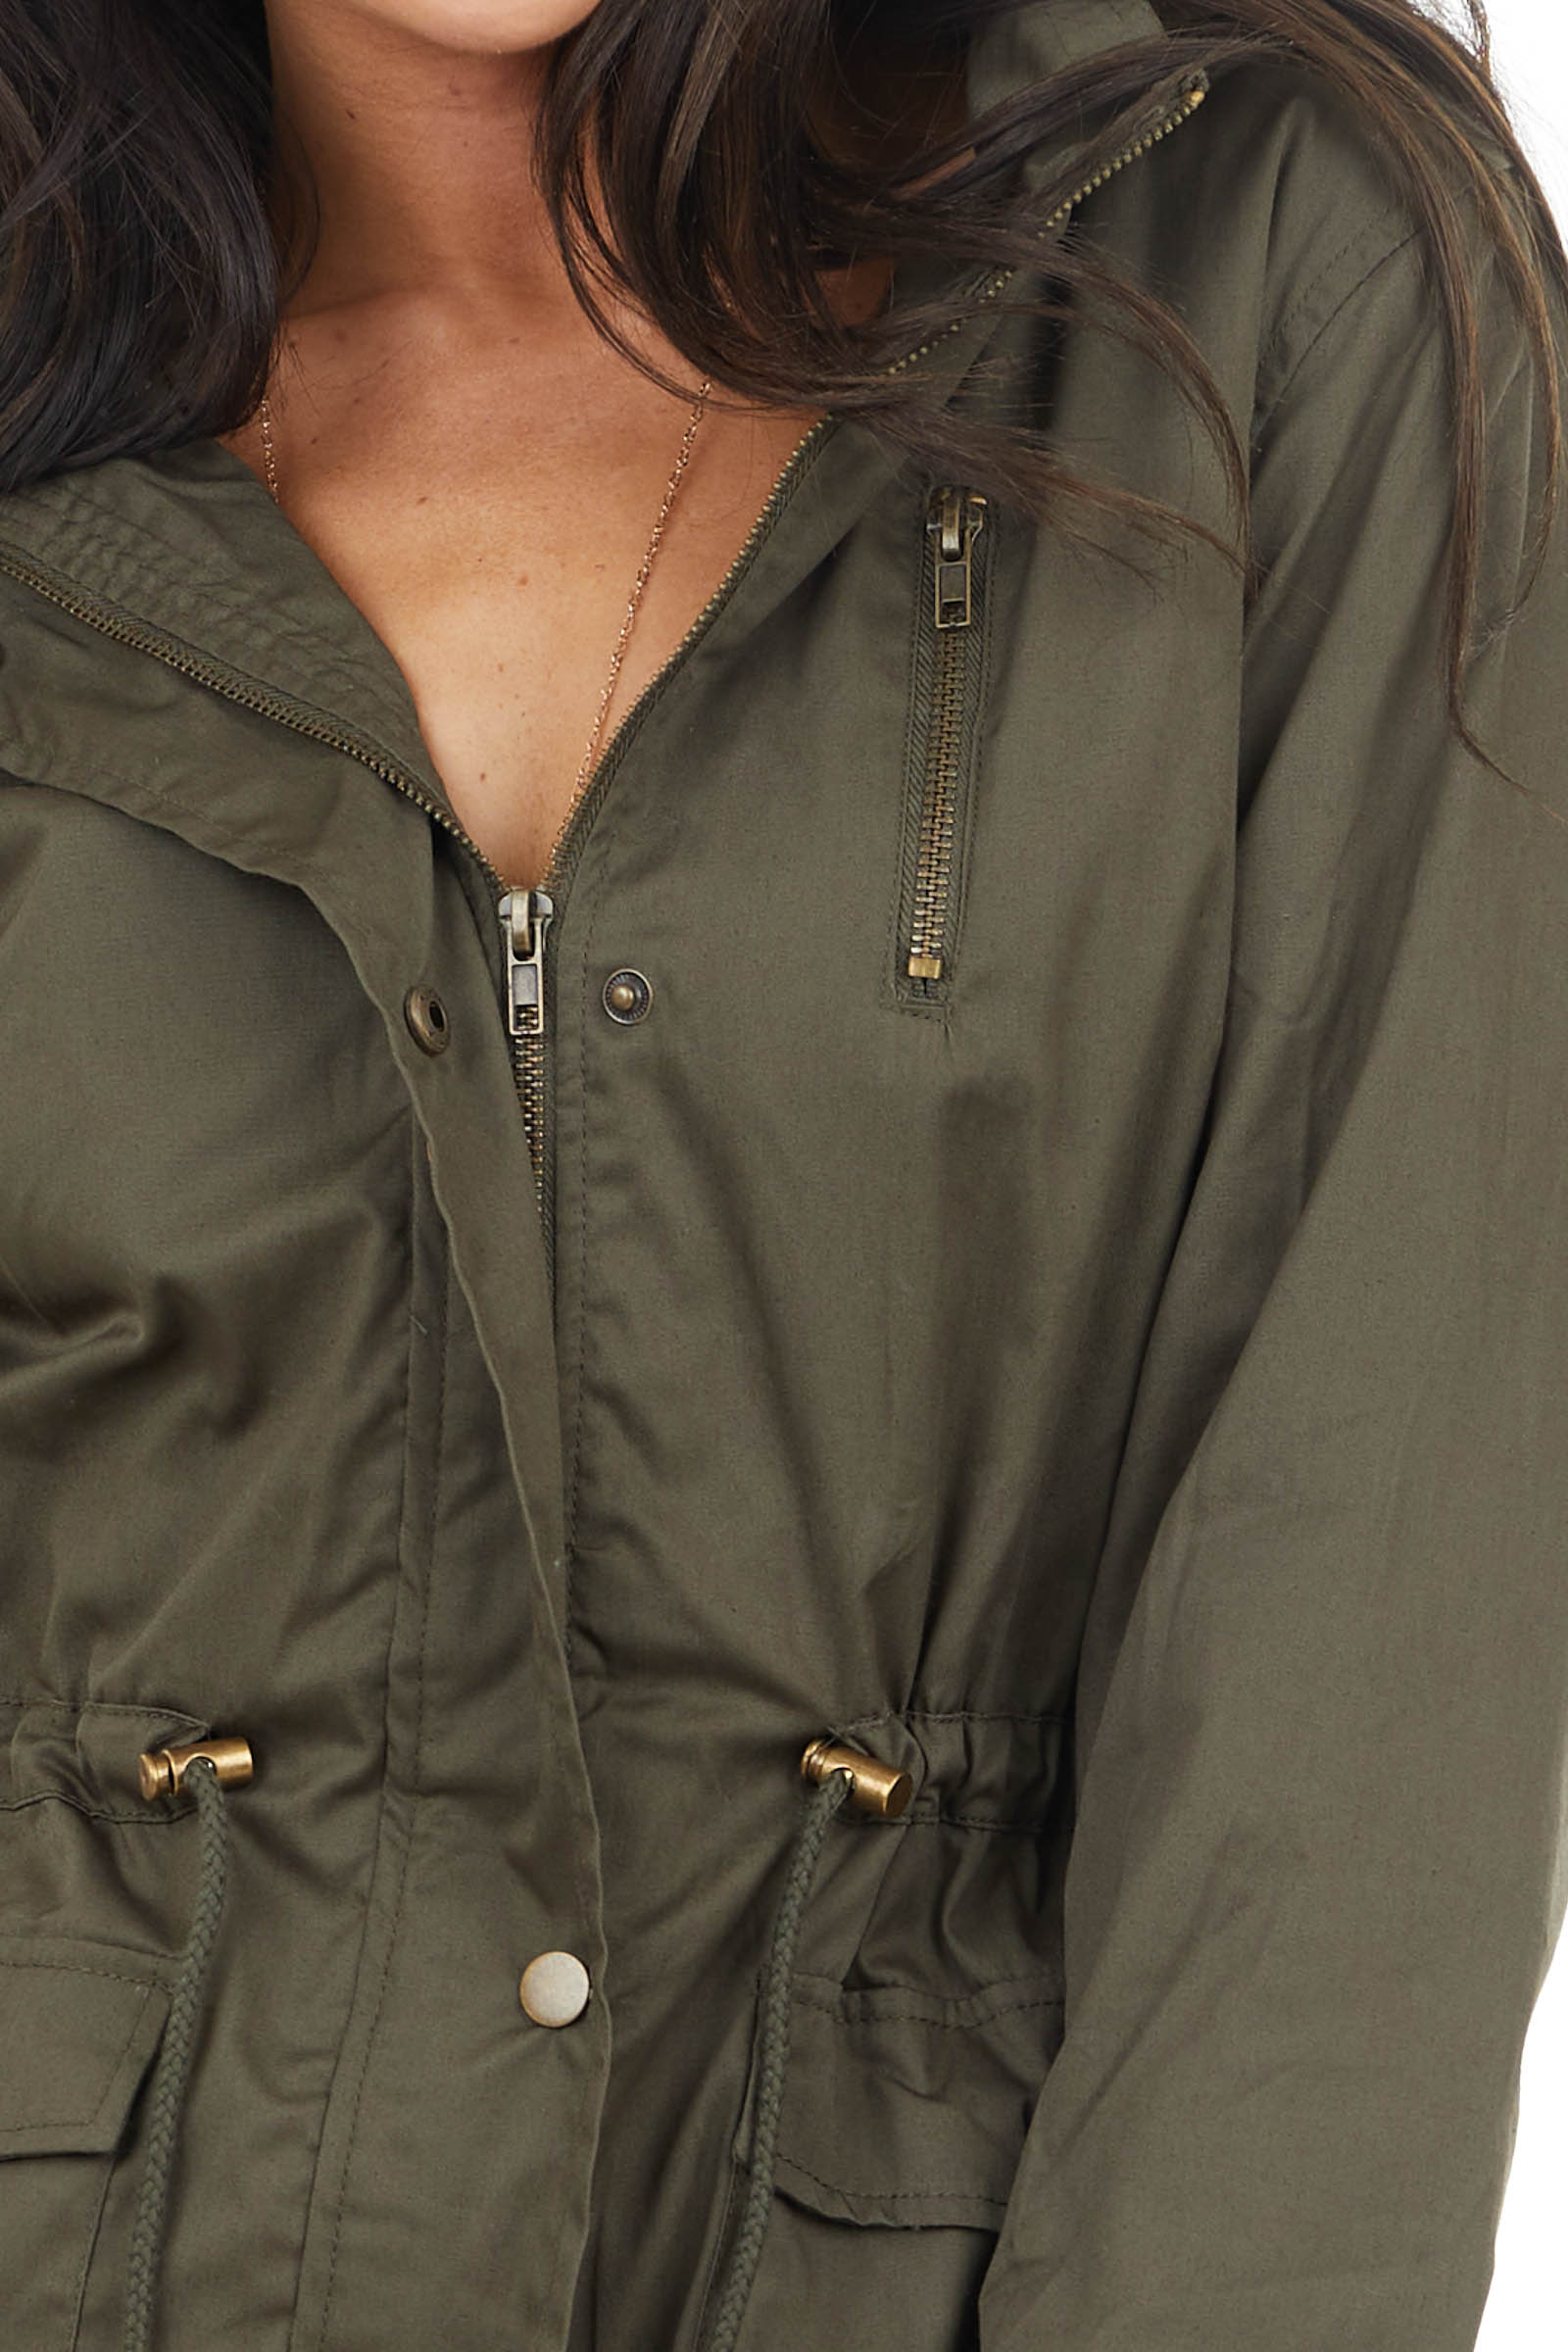 Olive Anorak Jacket with Faux Fur Lining and Front Tie